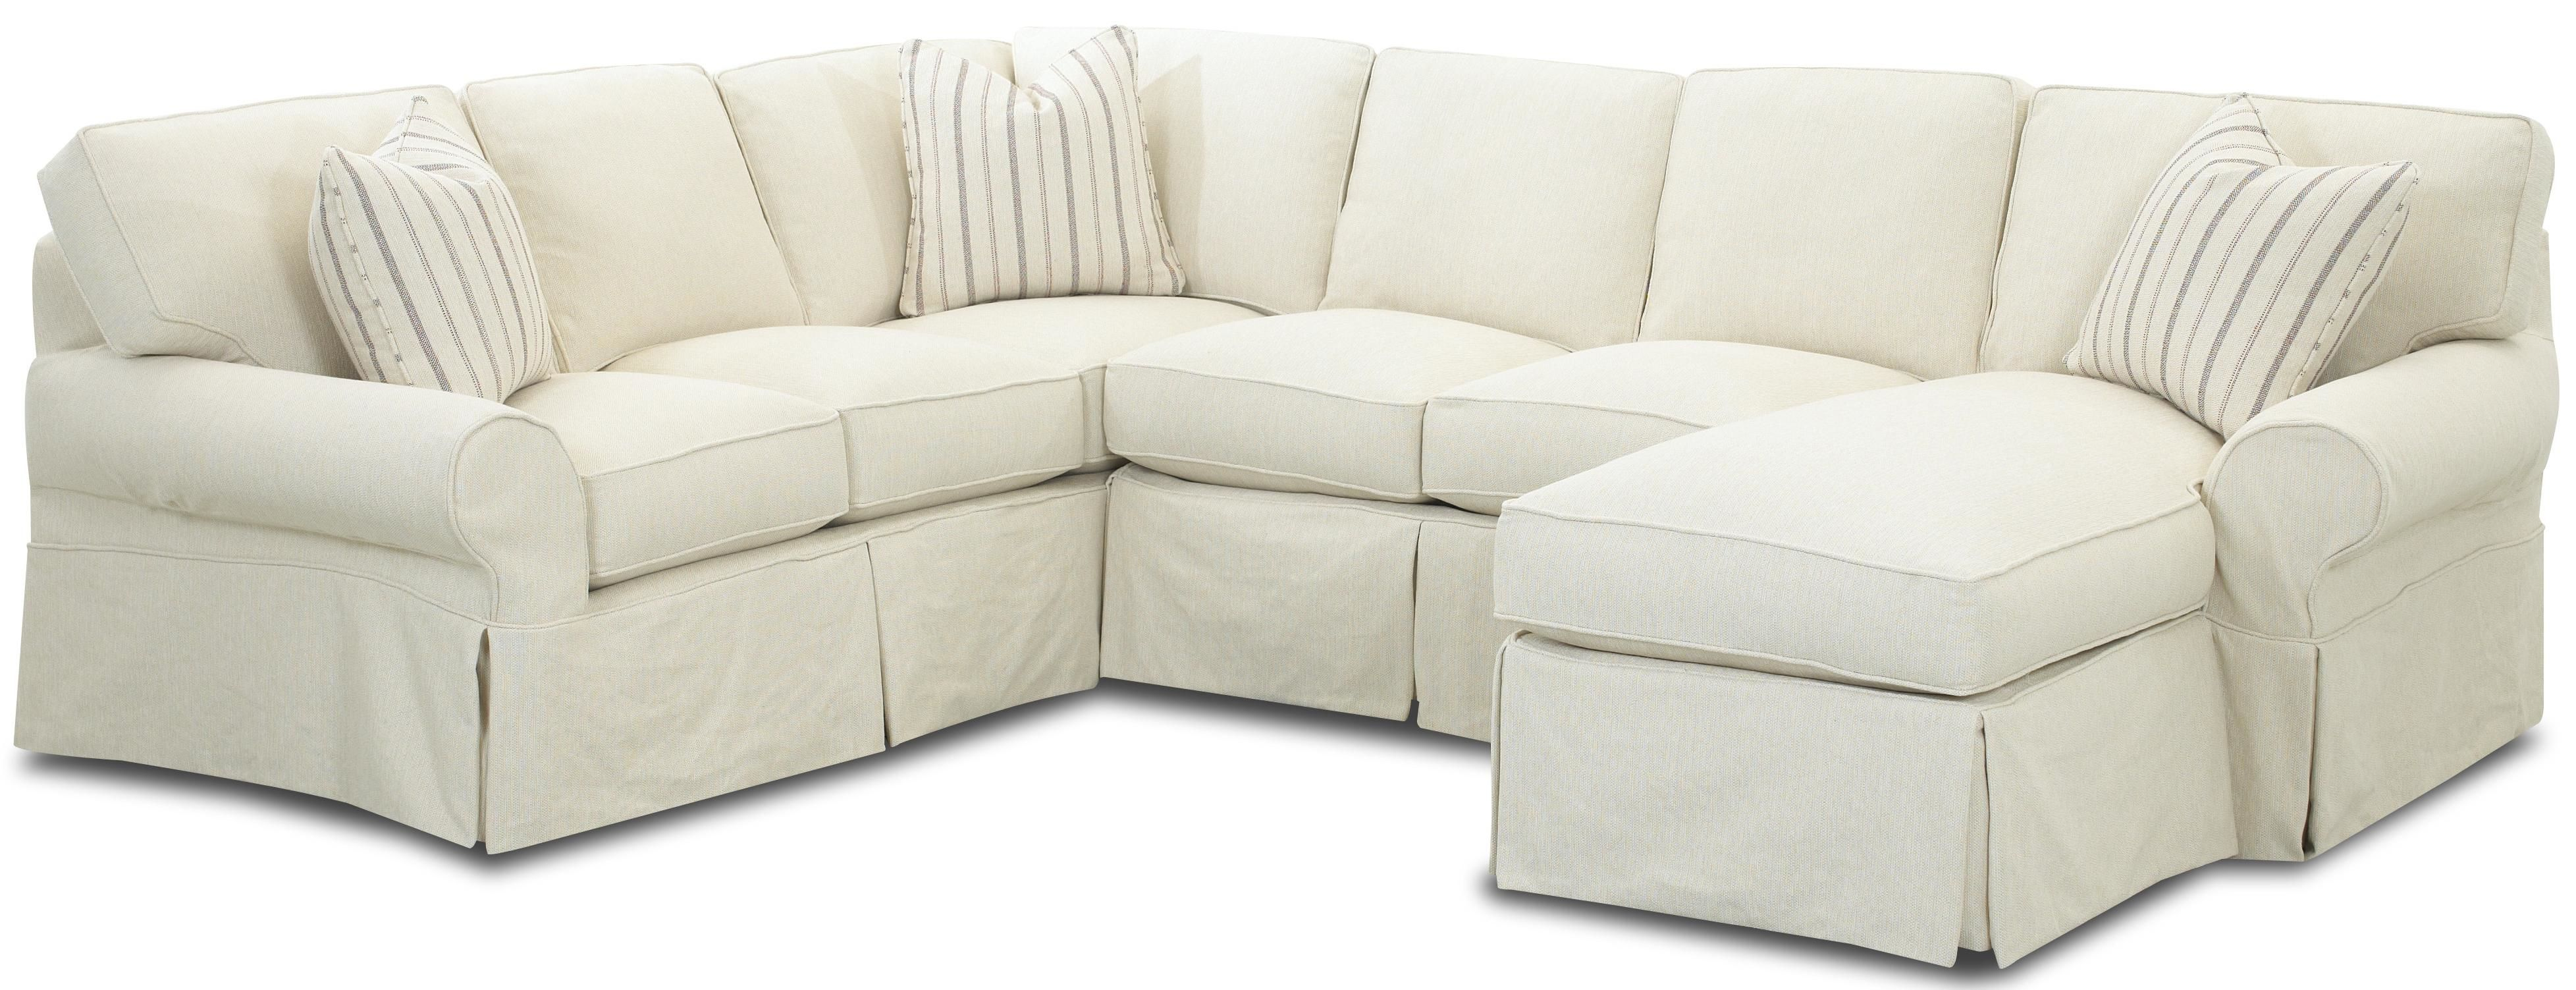 fresh slipcovers for sofas with cushions architecture-Luxury Slipcovers for sofas with Cushions Decoration